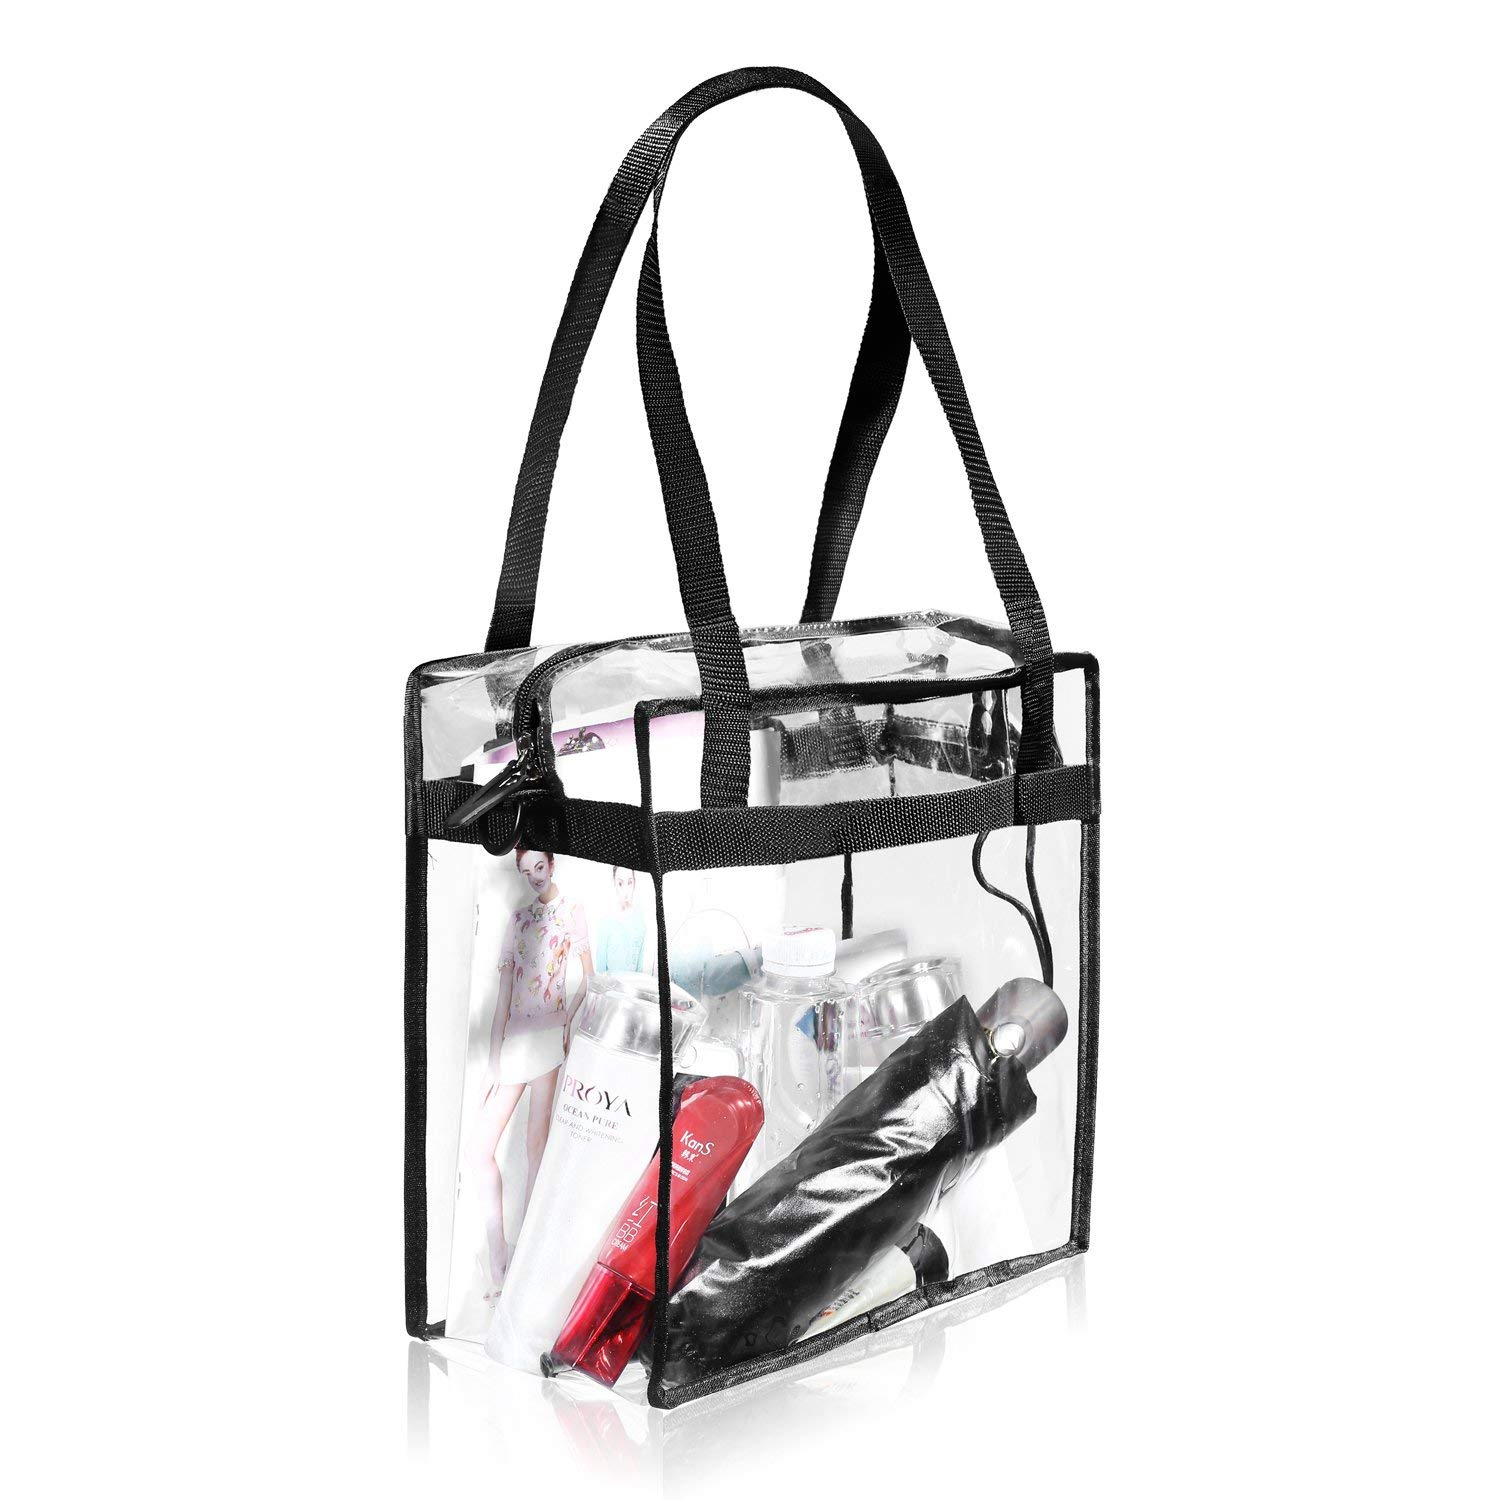 The Clear Tote Bag with Zipper